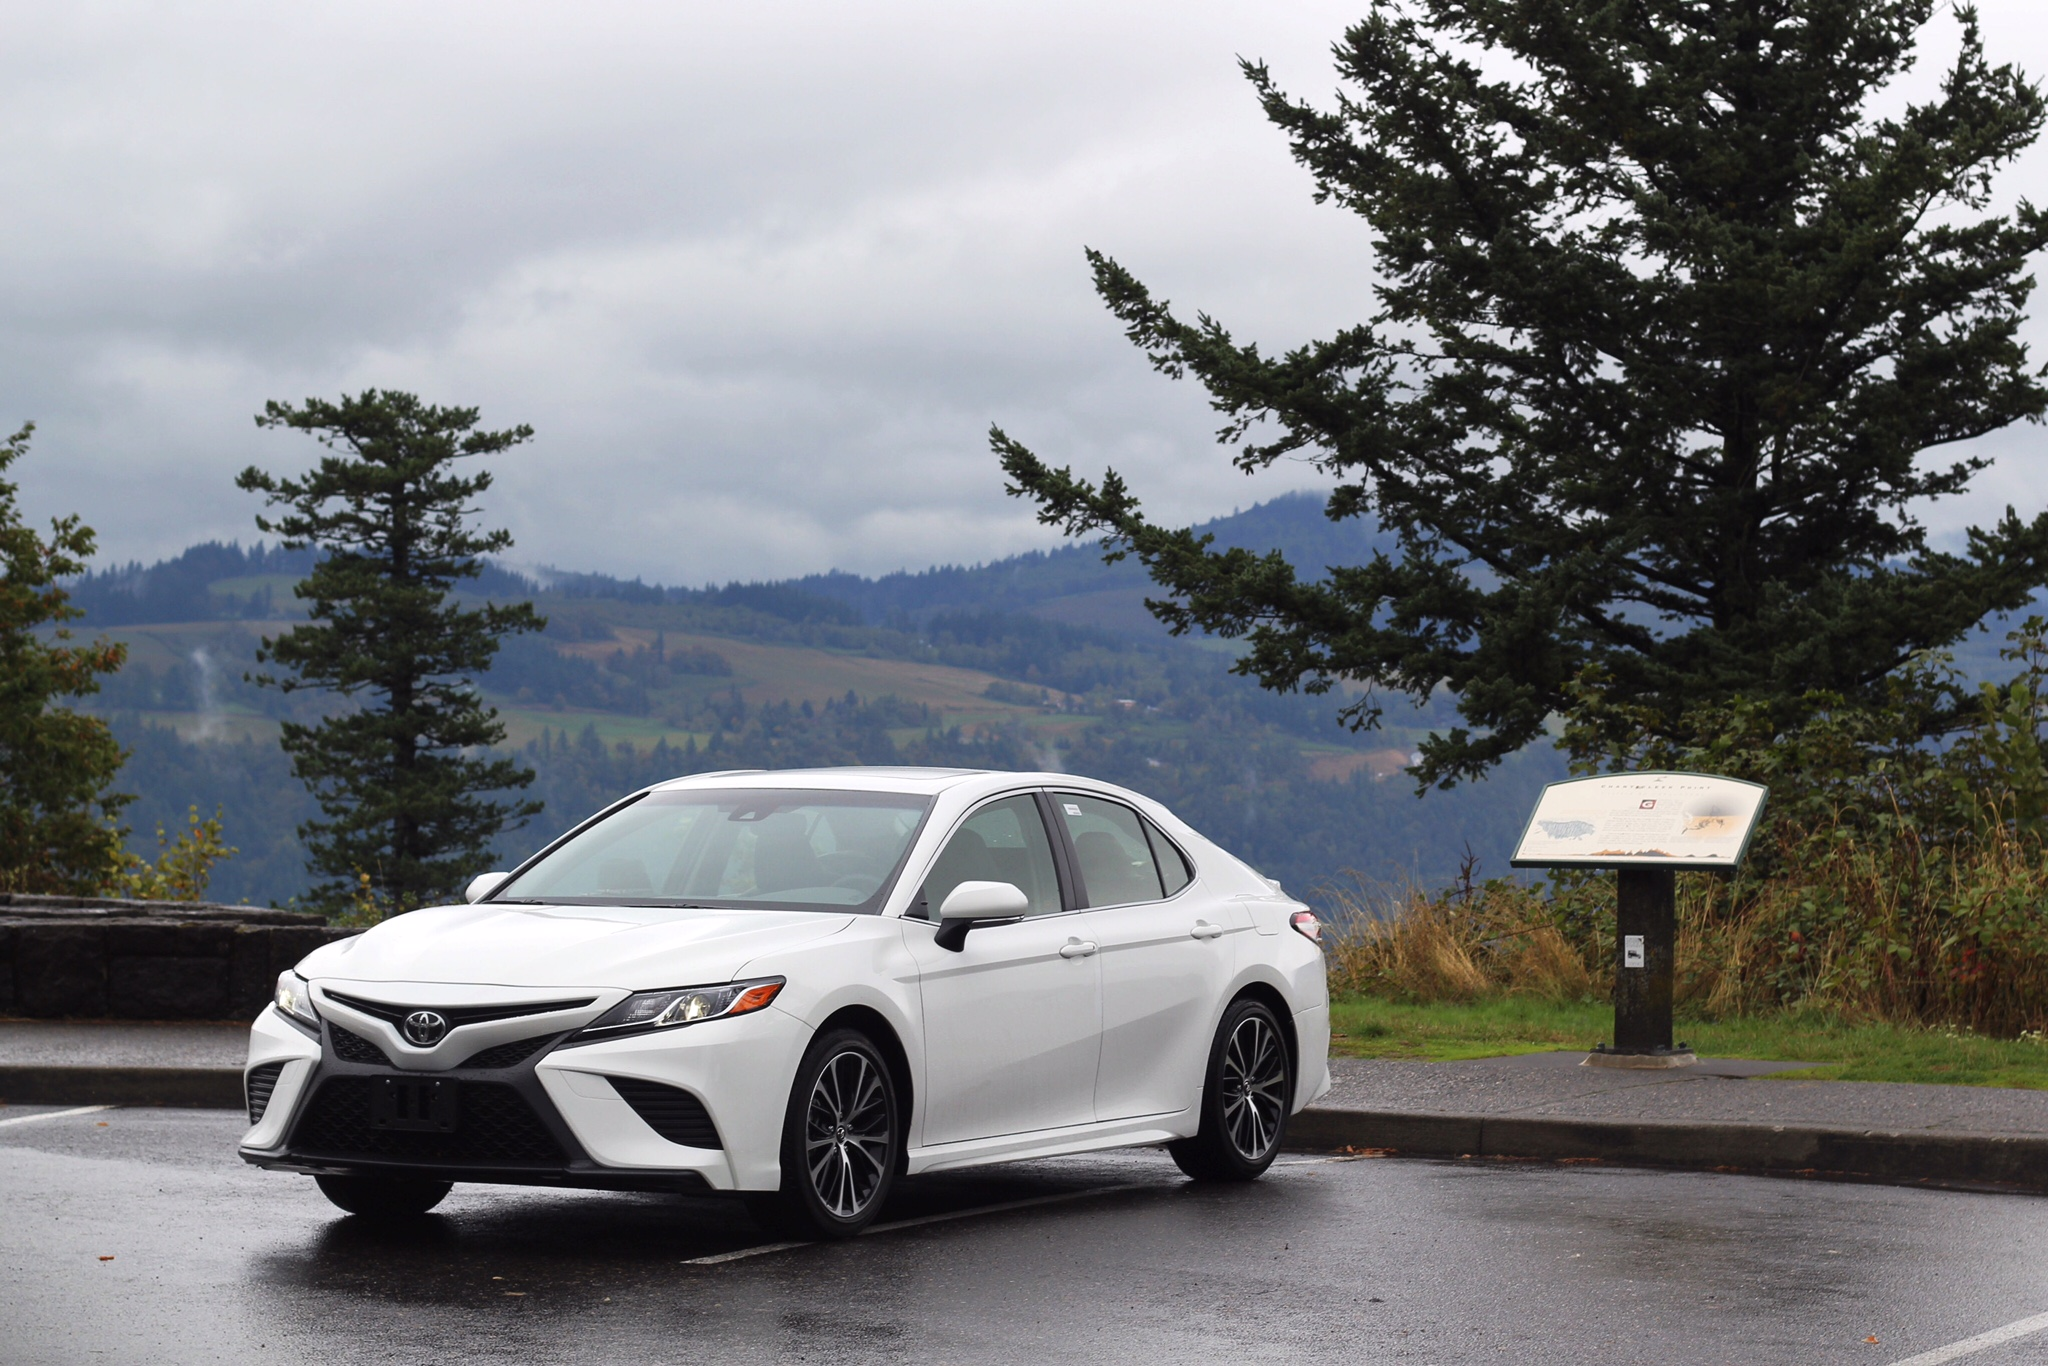 Toyota 2018 Camry at Women's Forum State Scenic View, Copyright Nicole Burron